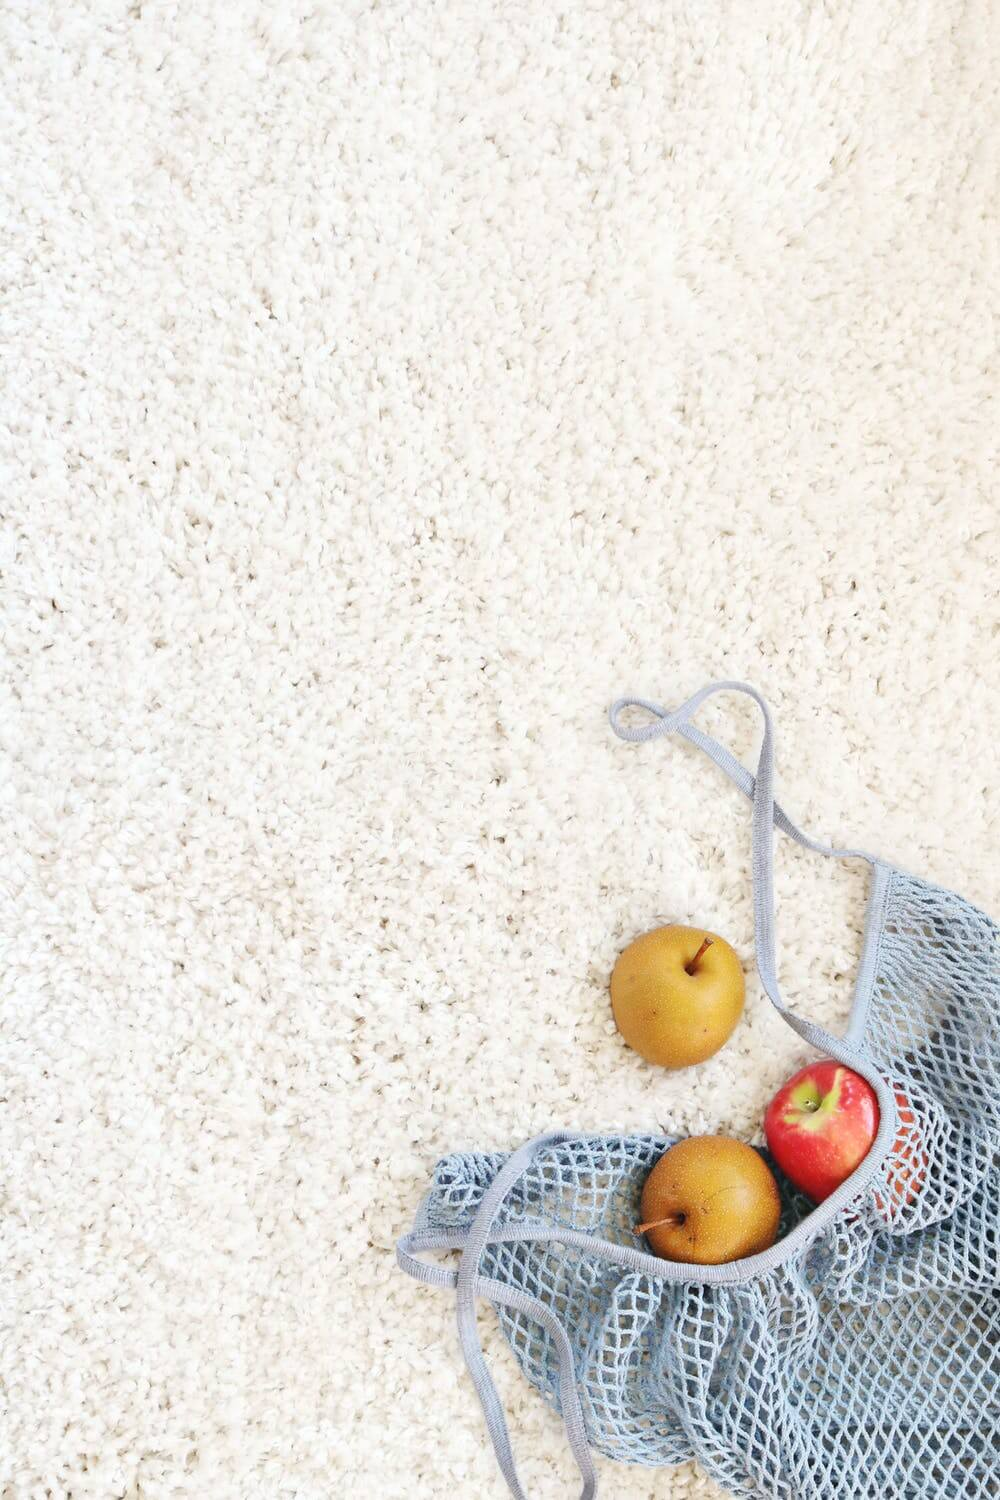 5 Best Carpet & Floor Sweepers For Messes